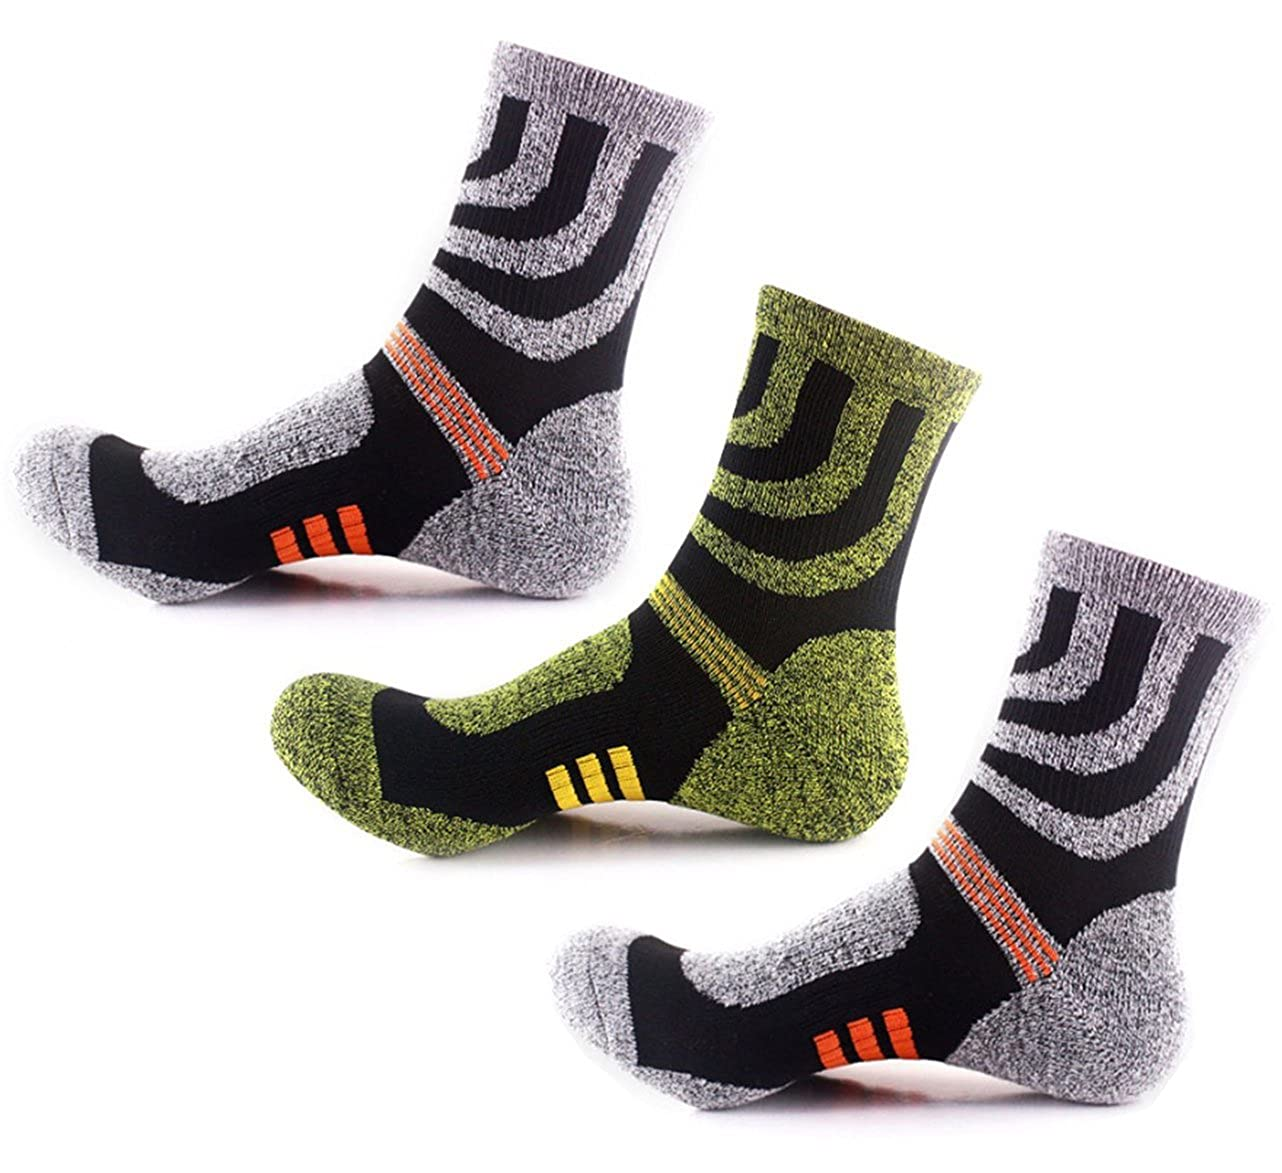 6e269d80baa Amazon.com   3 Pairs Hiking Socks for Man Running Walking Camping Golf Gym  for Outdoor Sports Running Walking Climbing   Sports   Outdoors